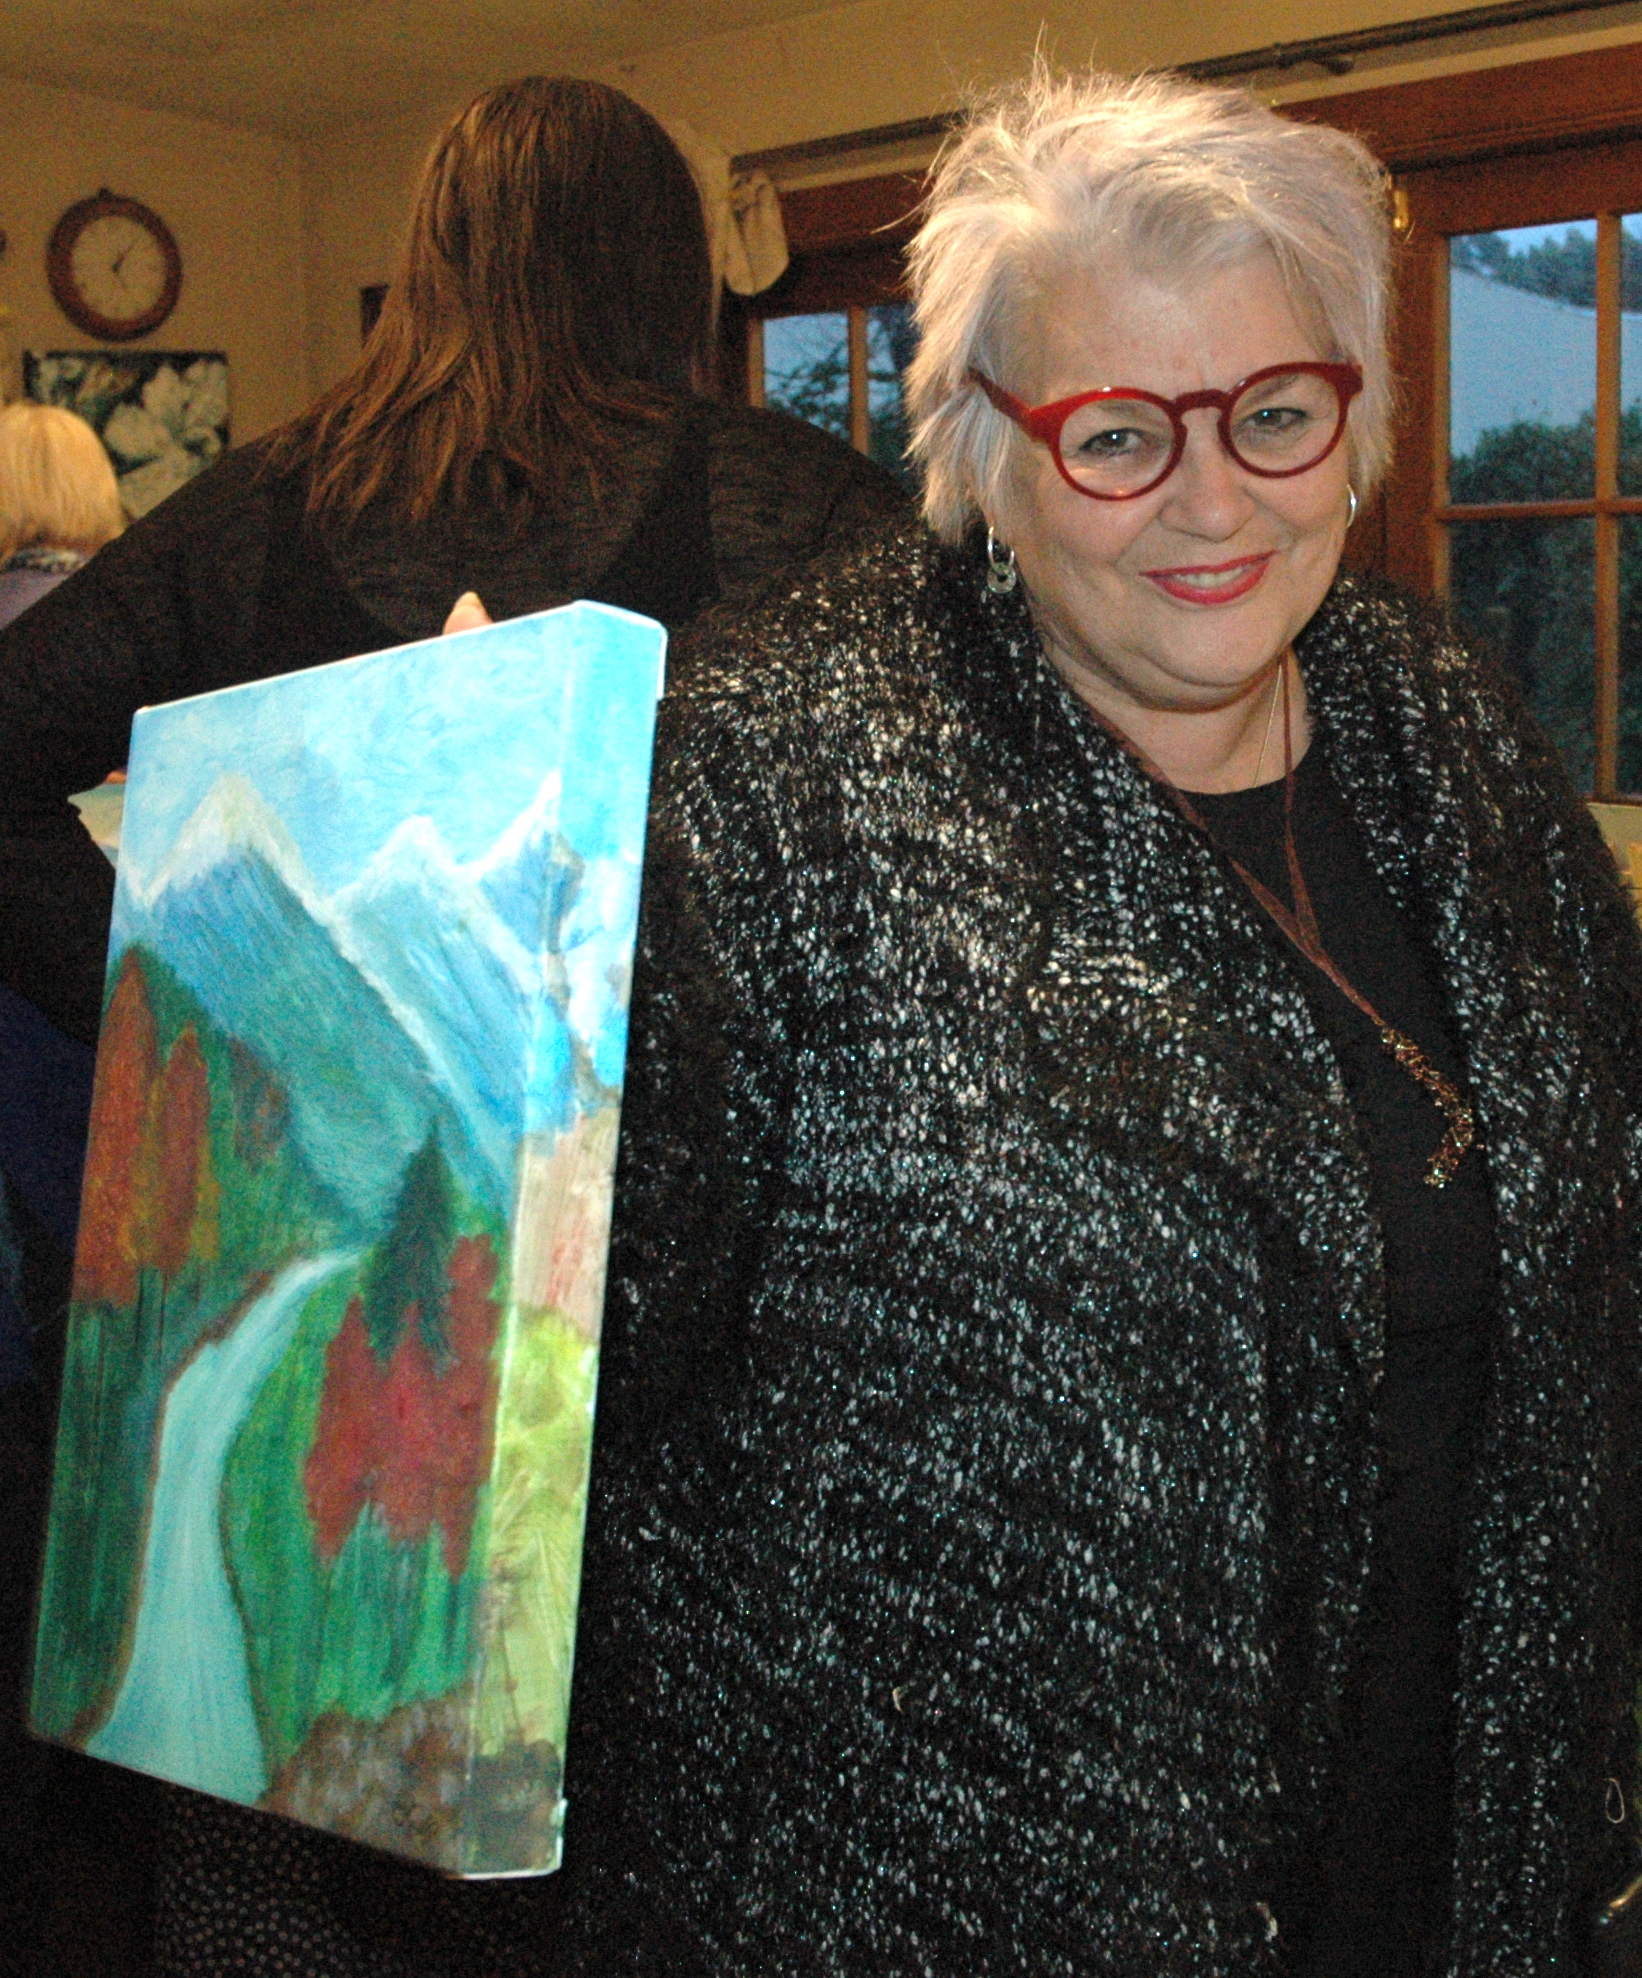 AAP 1901 - Eileen with her painting.JPG